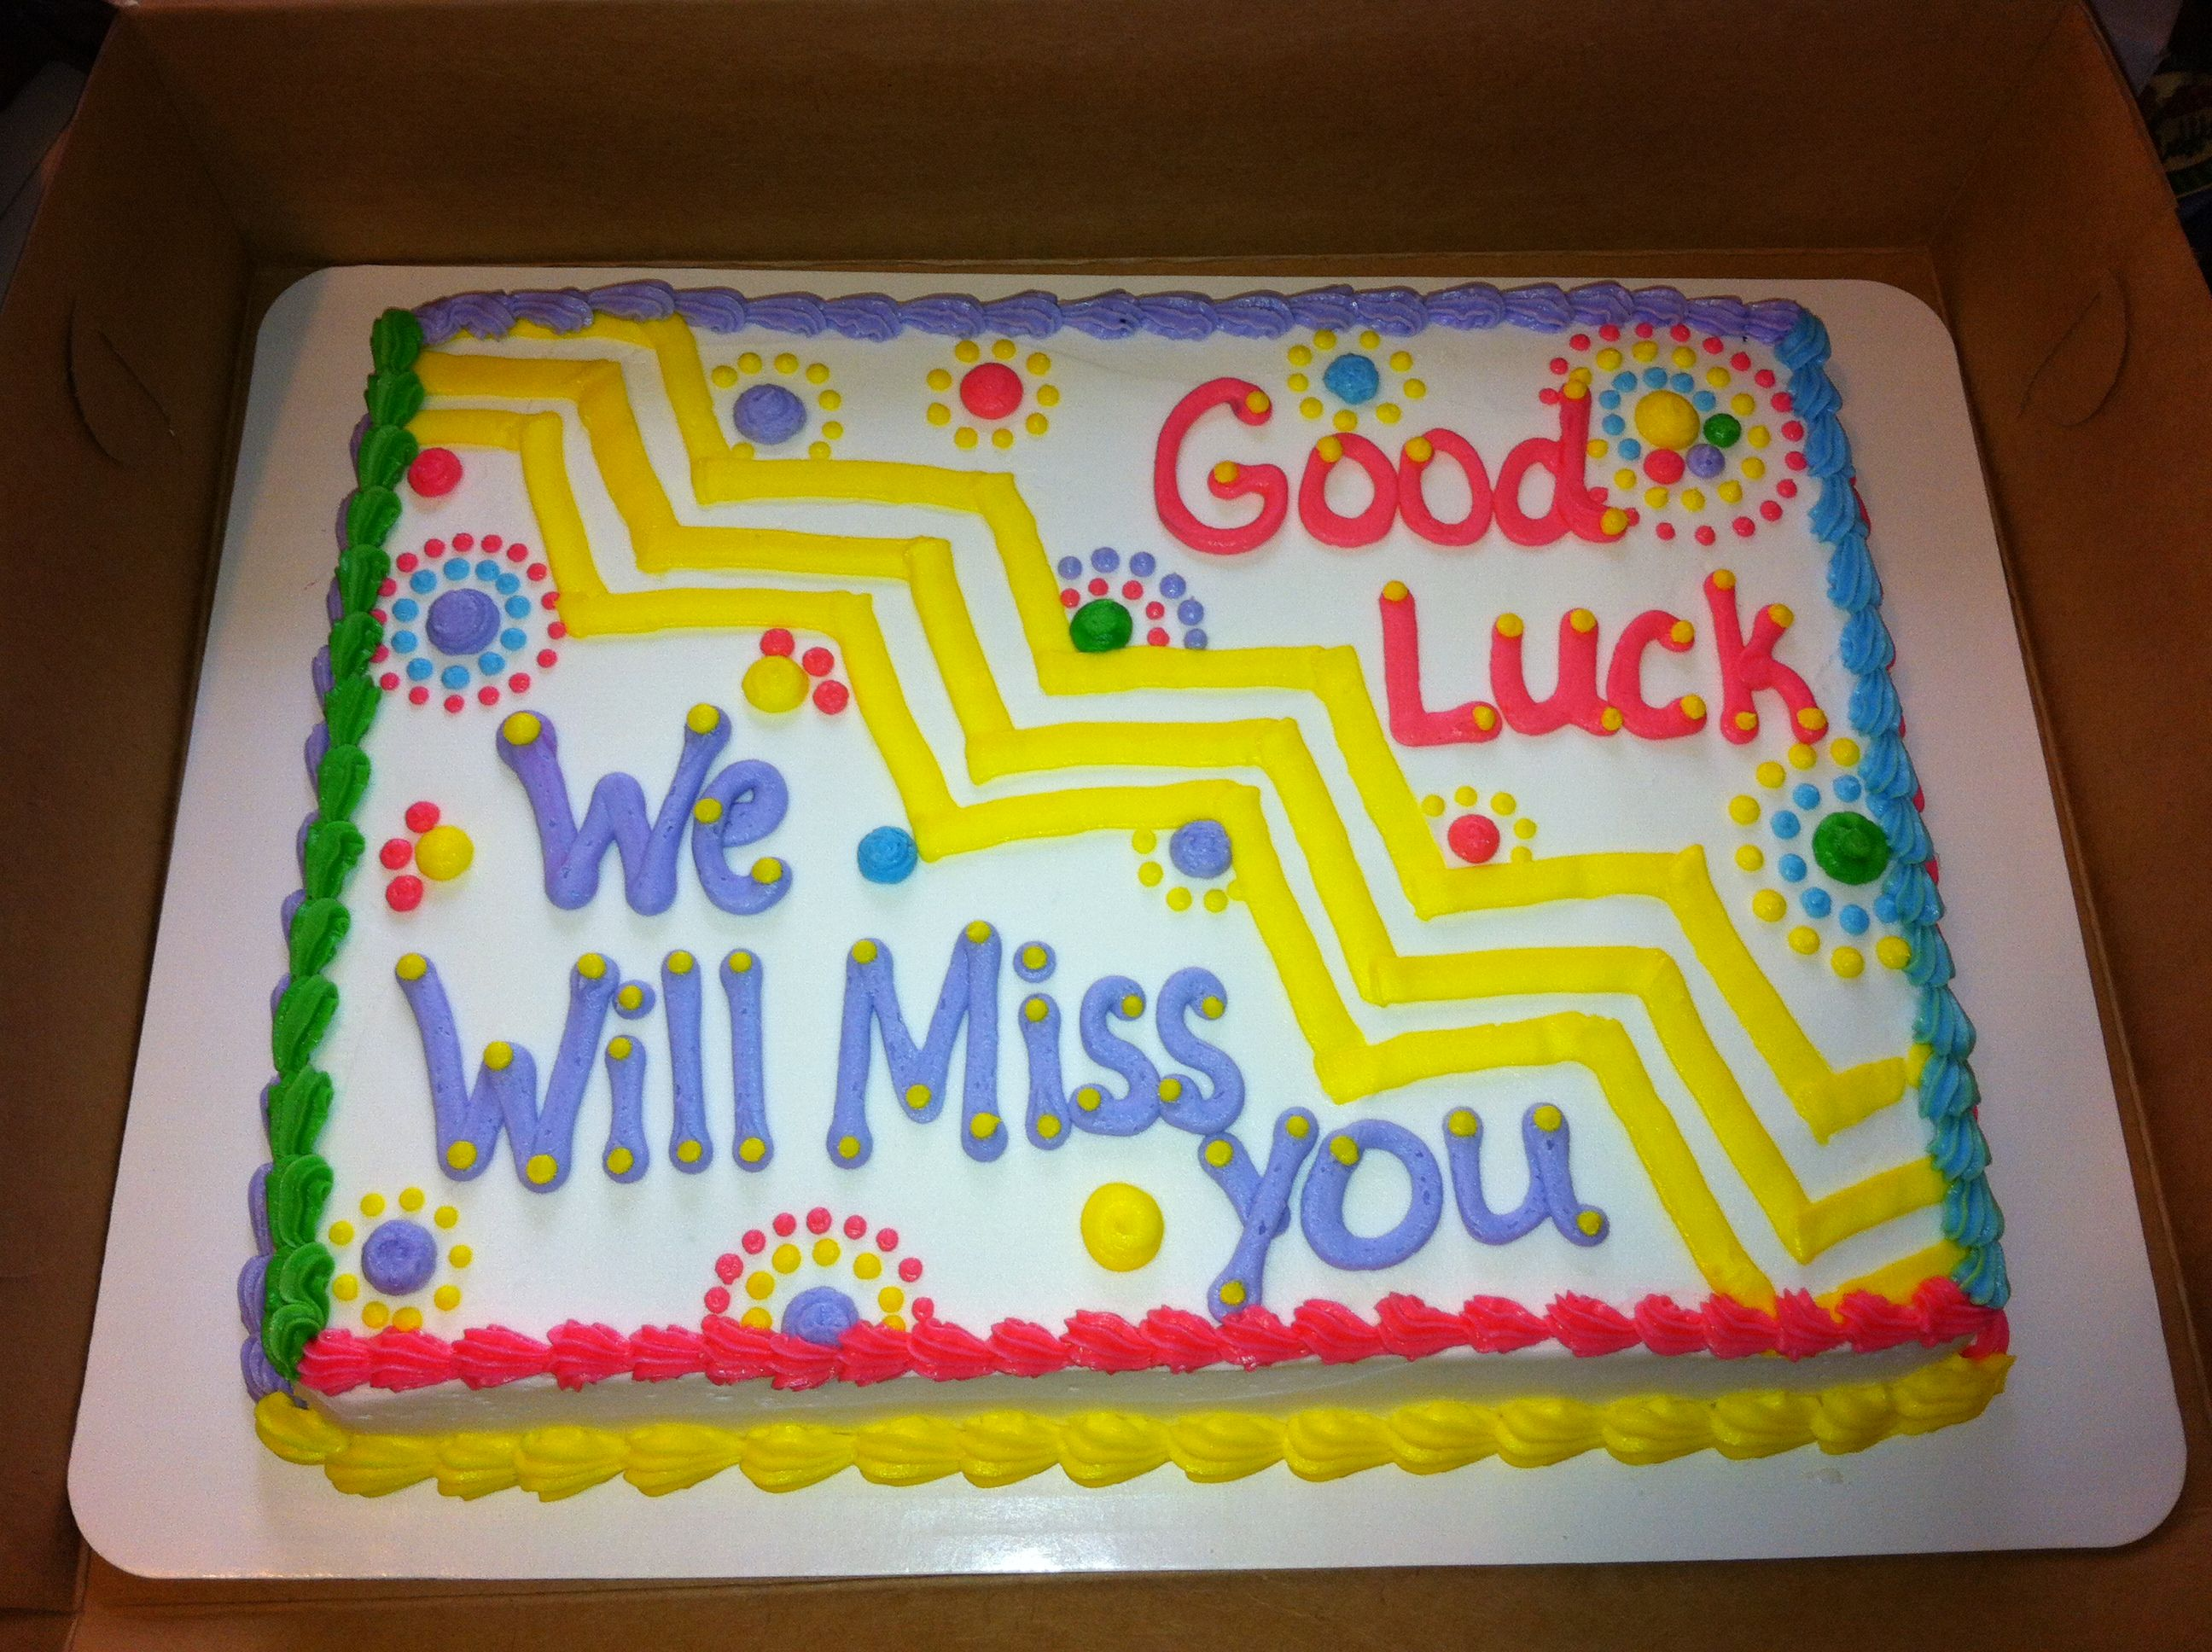 Farewell ideas for coworkers - Farewell Cake